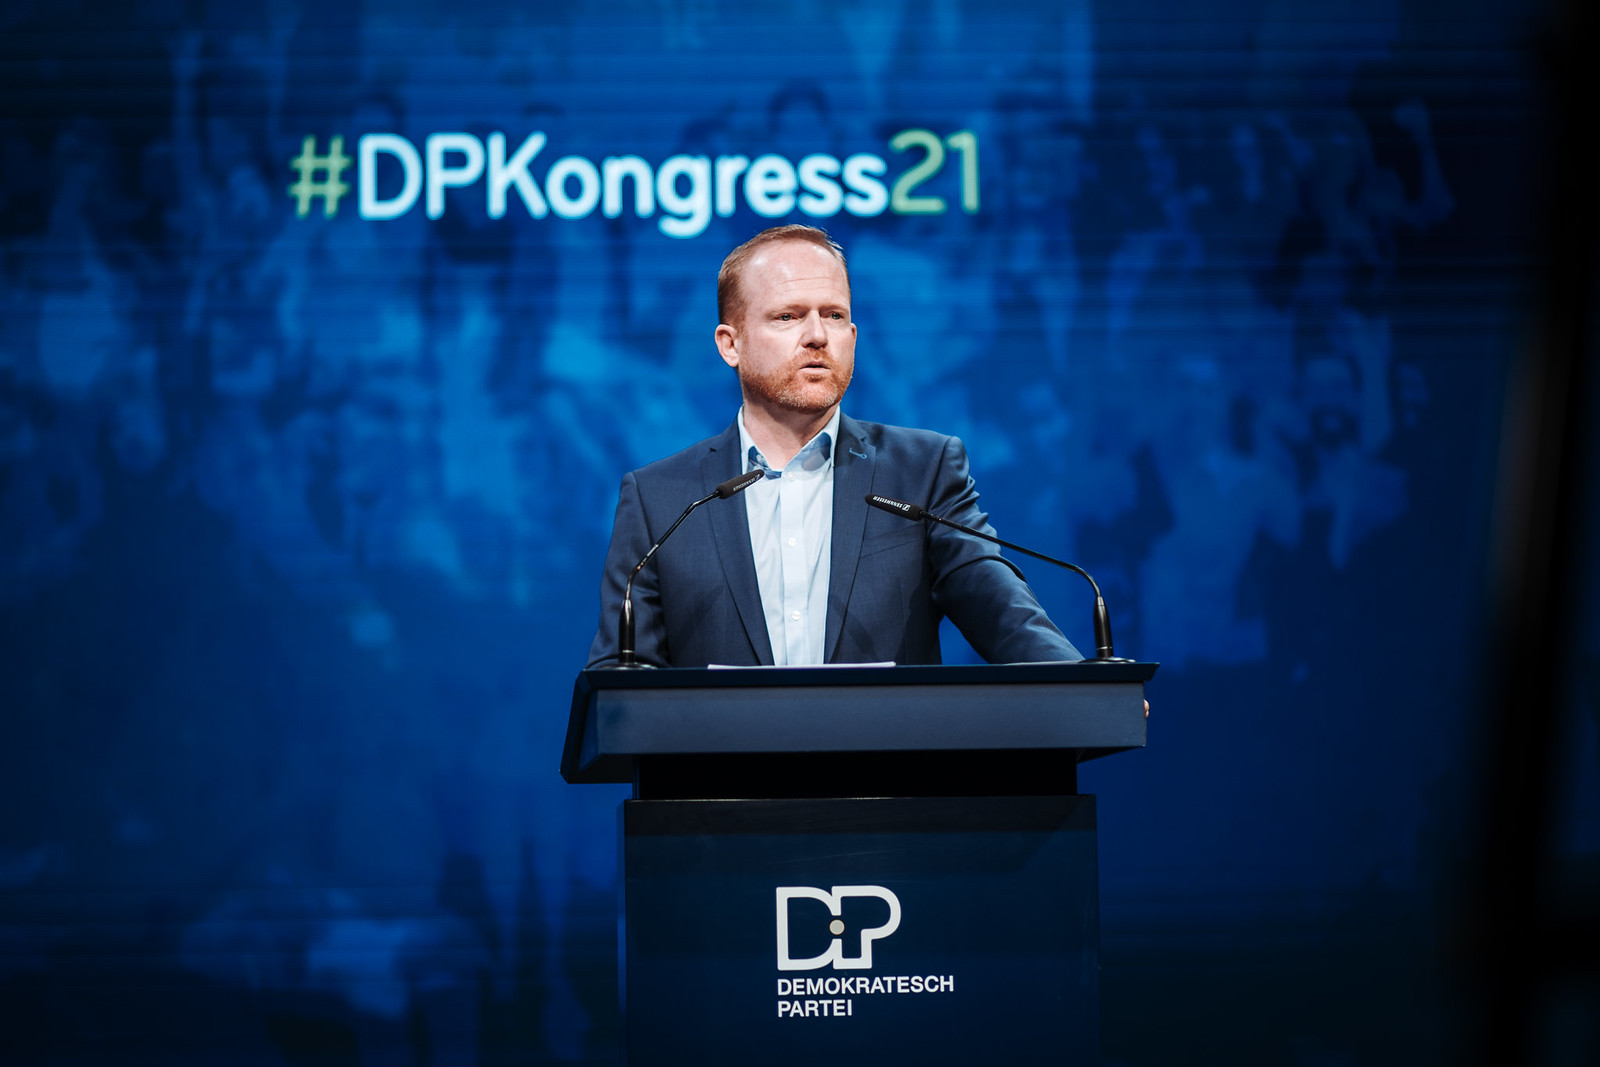 Digitalkongress 2021